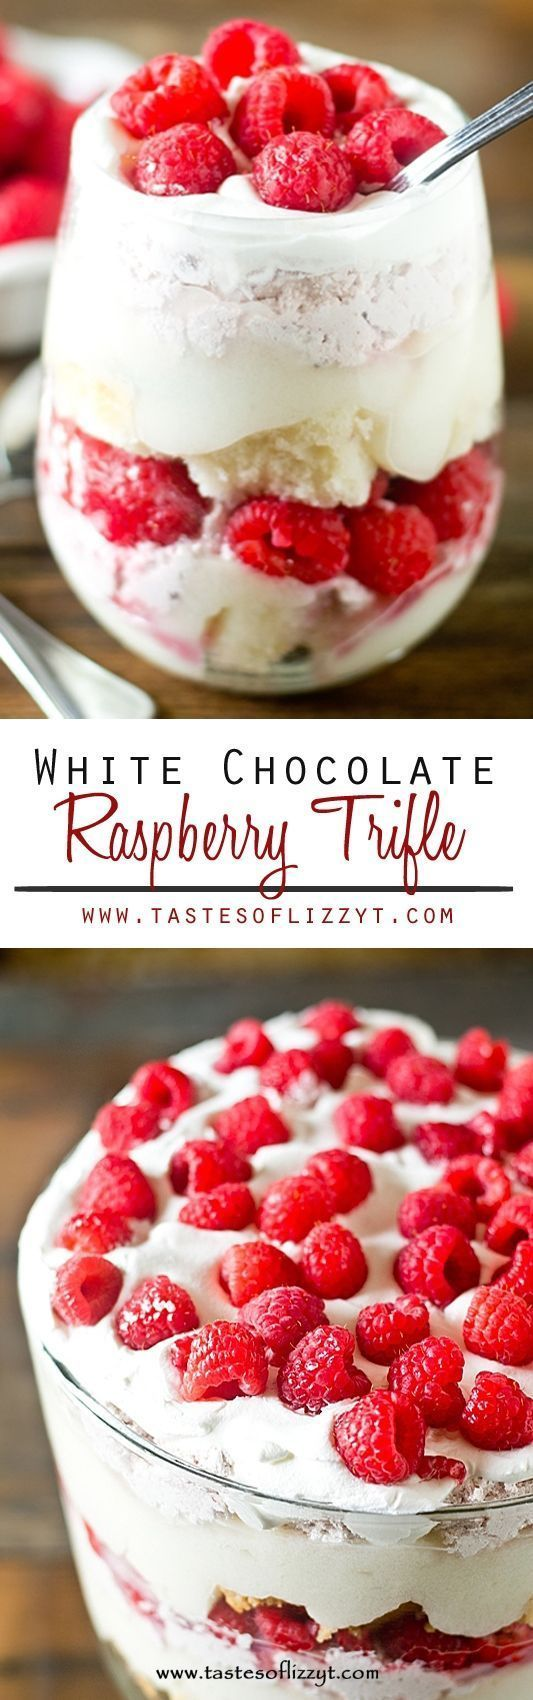 White Chocolate Raspberry Trifle - Layers of cake, white chocolate pudding and raspberry cream.